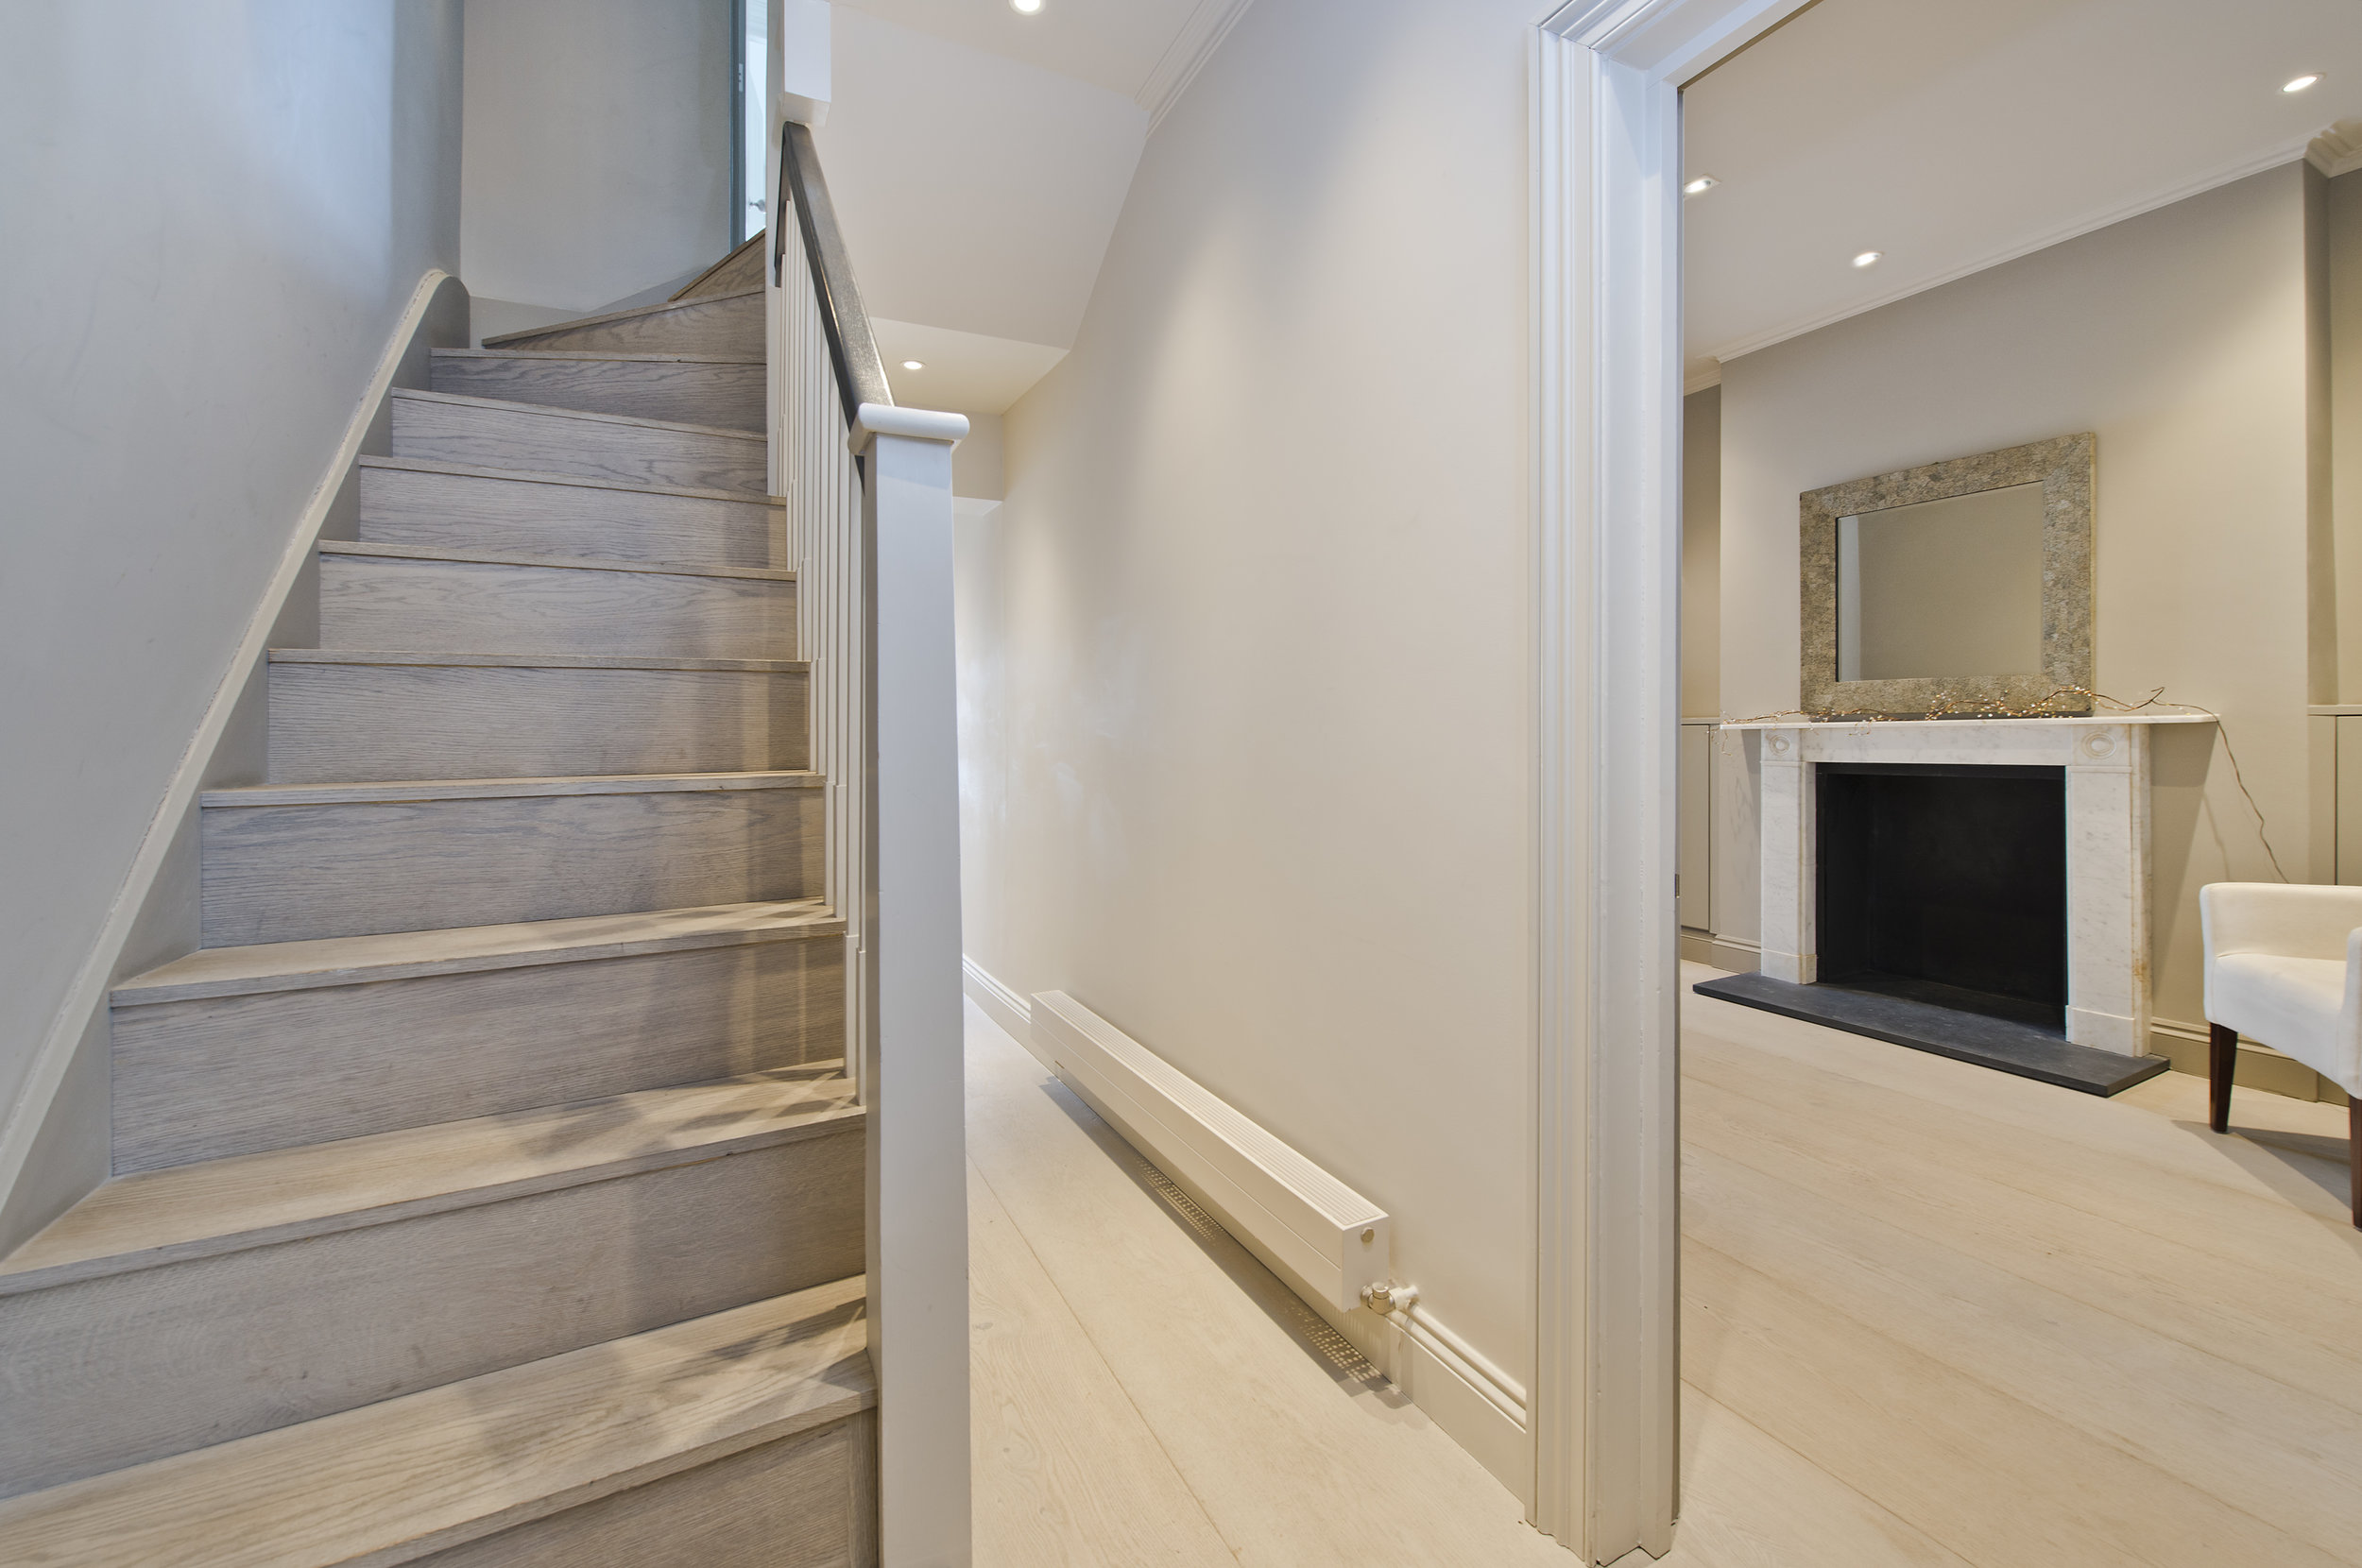 Bespoke Stairwell, Chelsea, The Kitchen and Loft Company.